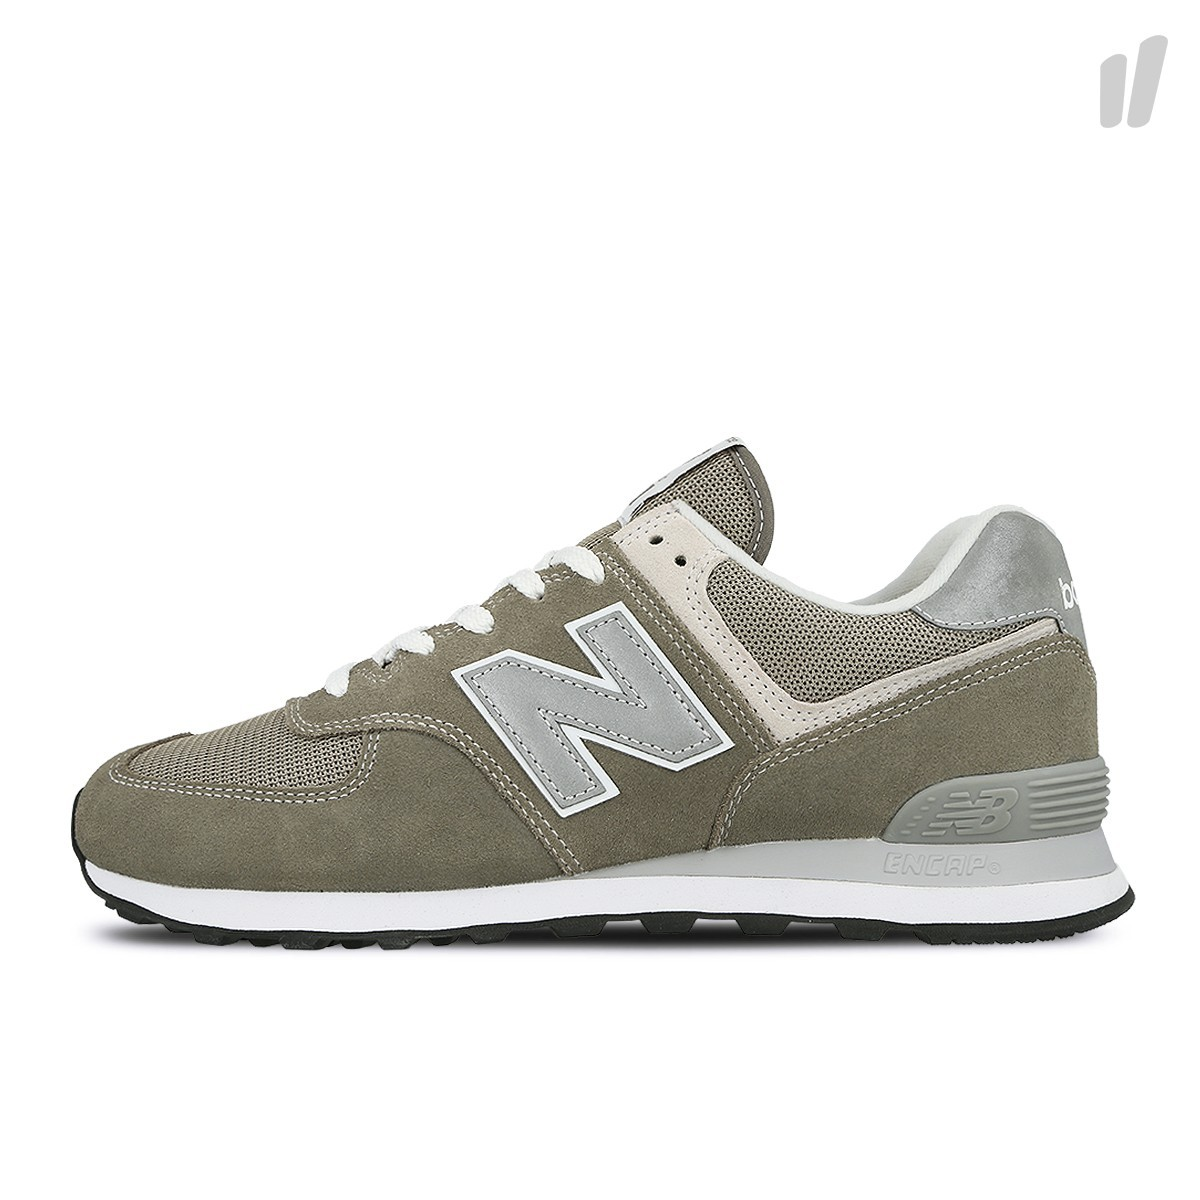 2dece70ac4d6a ... New Balance ML574D EGG size 10,5 US men 633531-60-121 ...